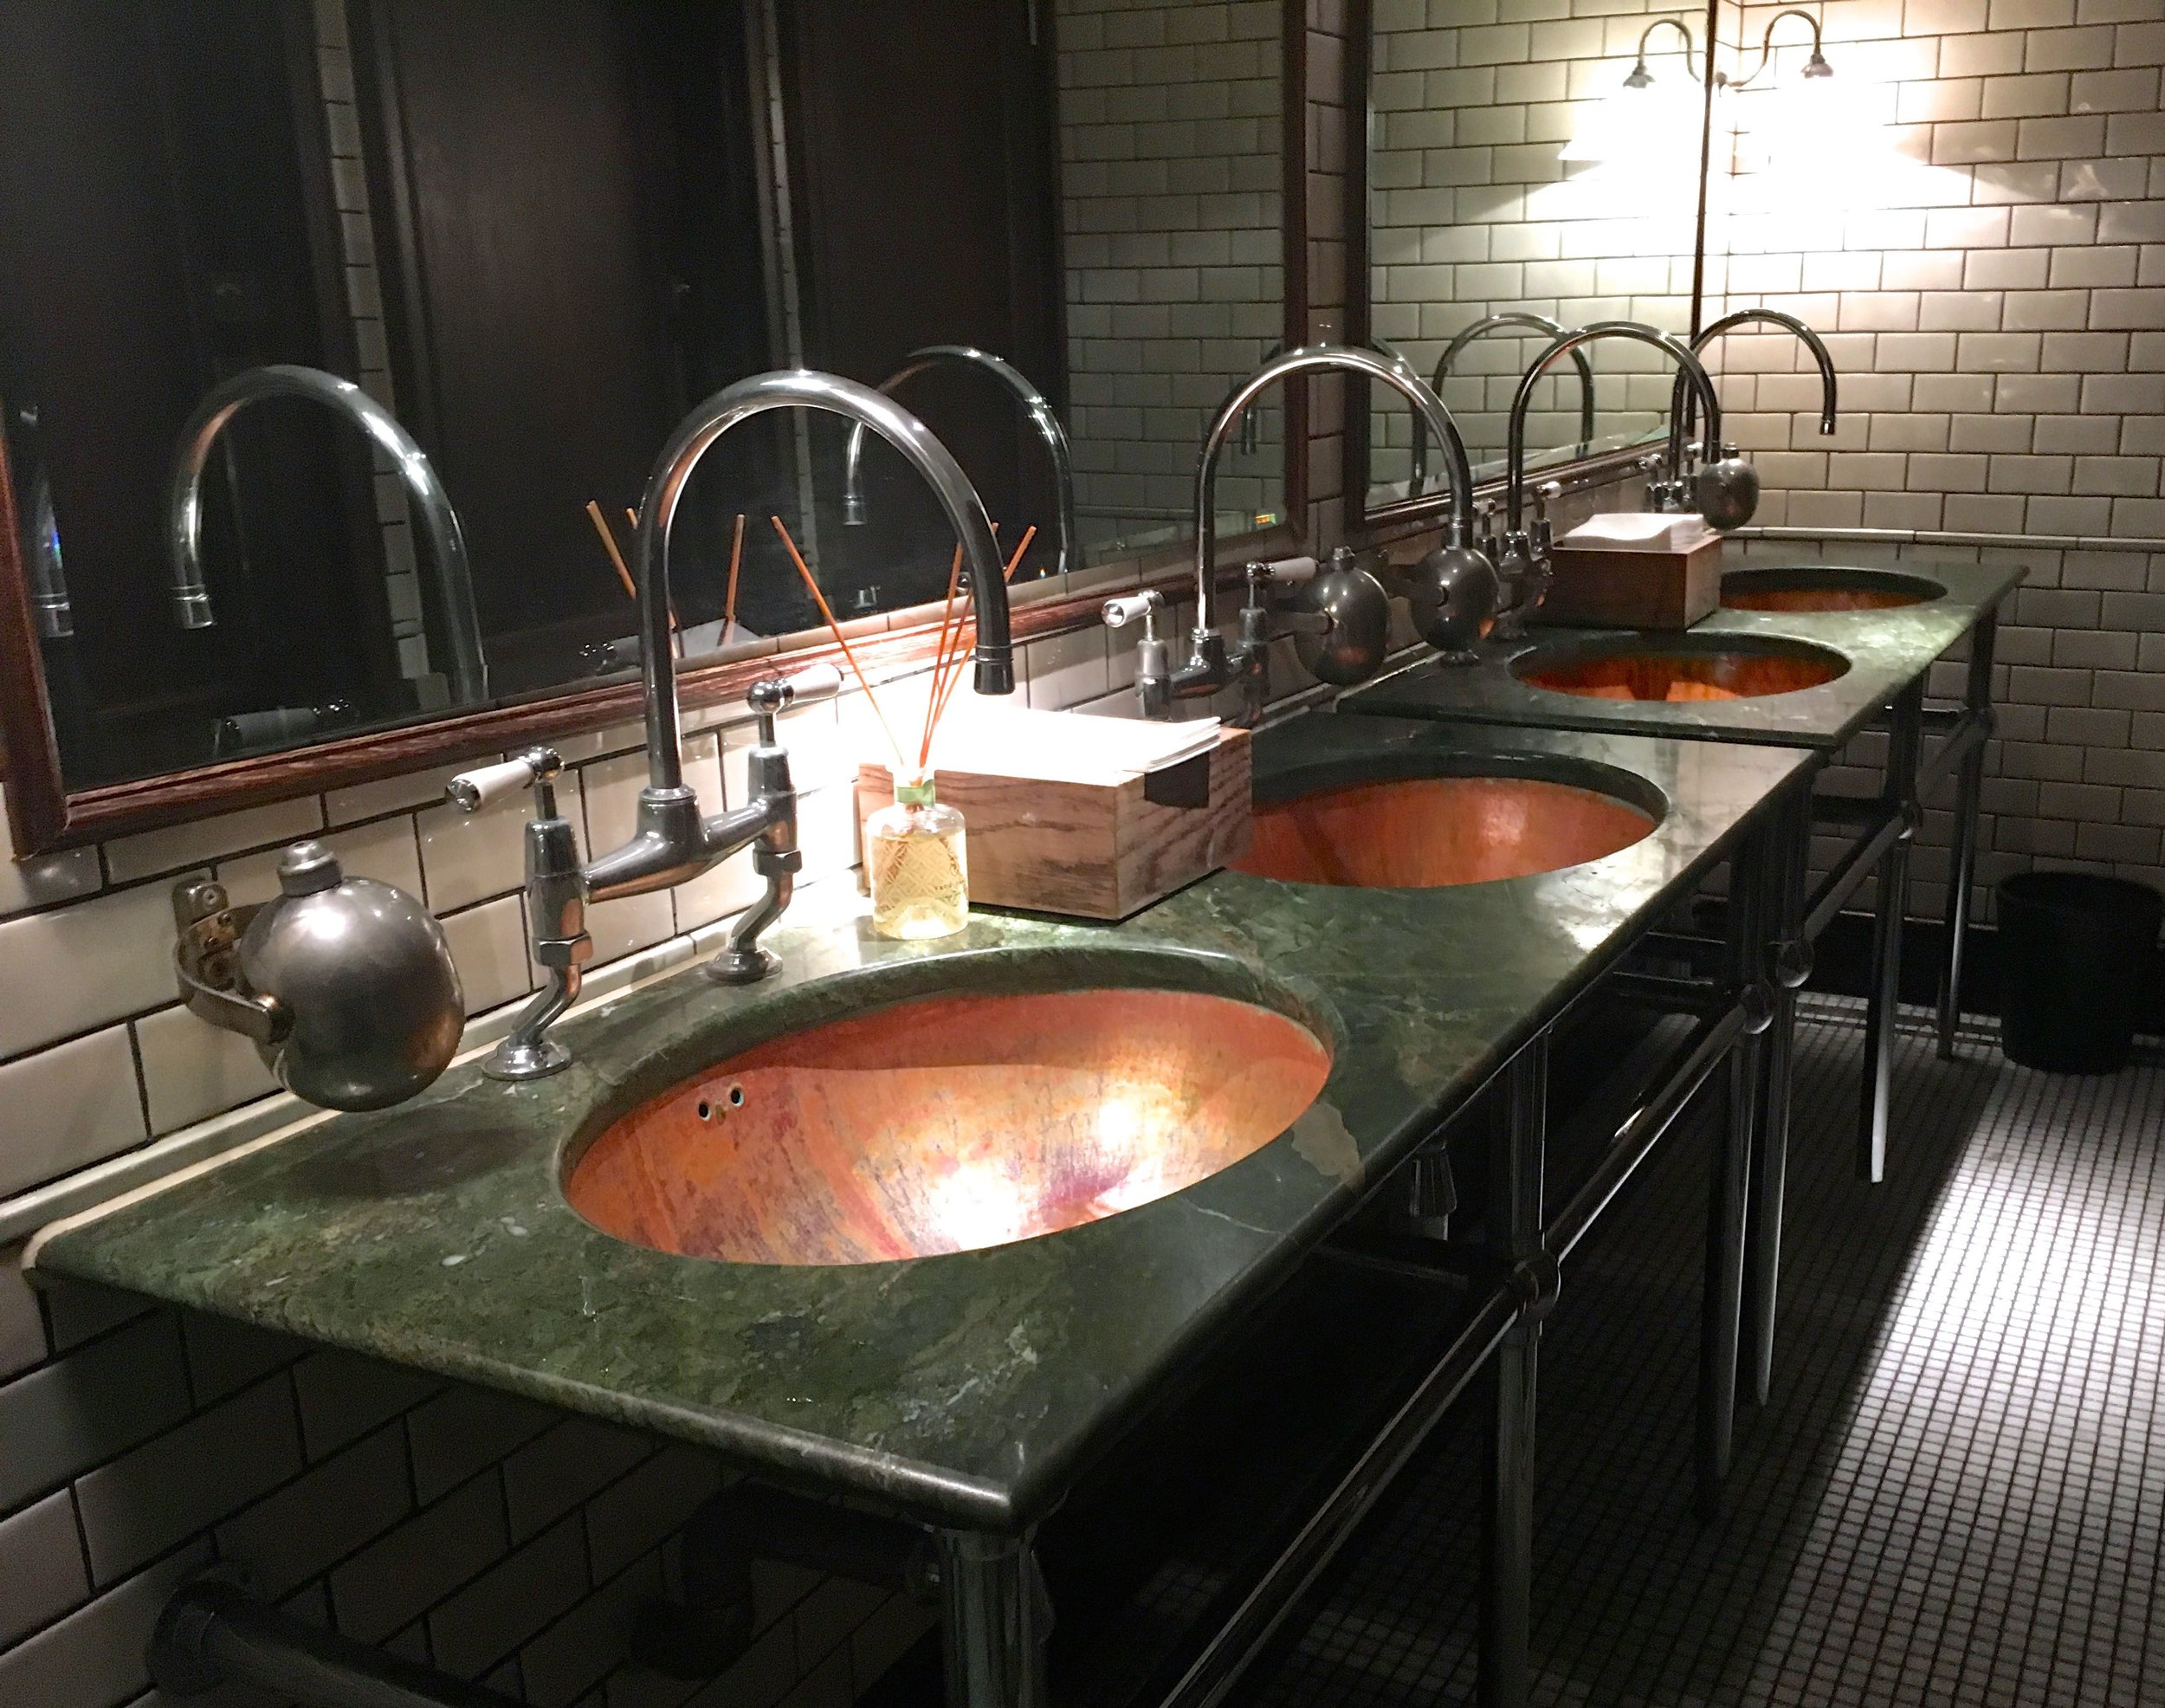 First impressions were good, just look at that row of wash basins